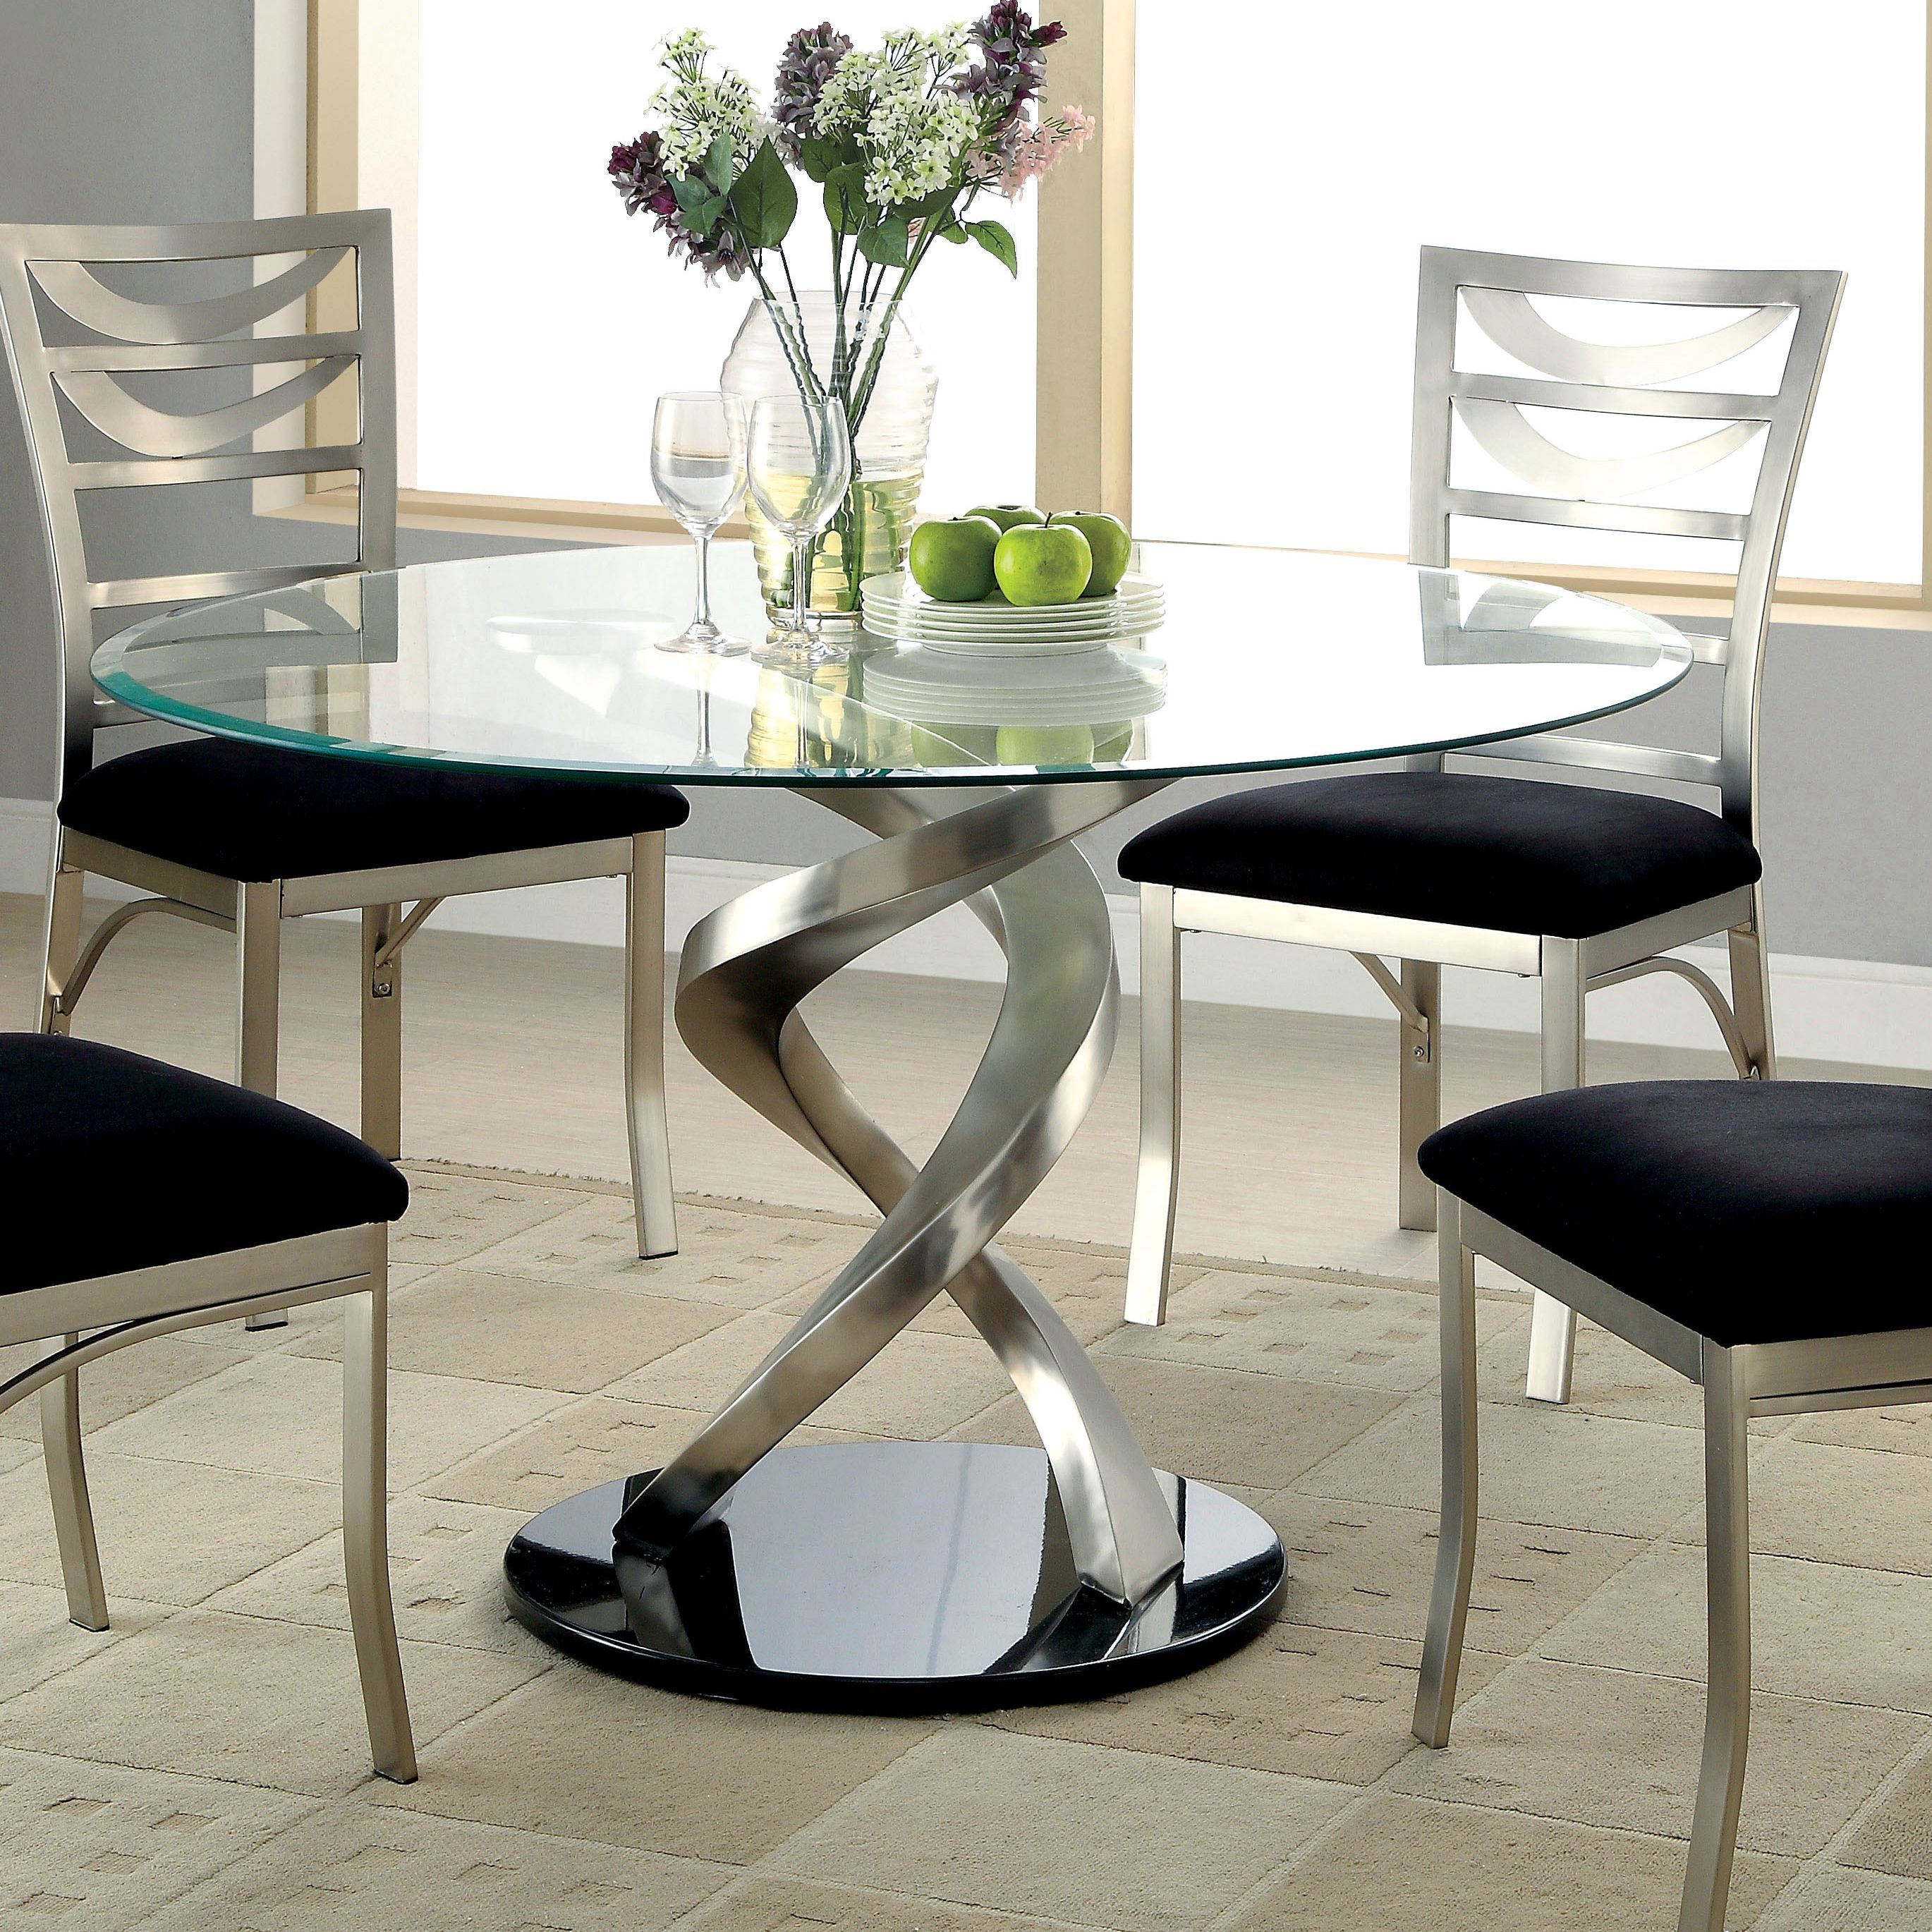 Overstock Com Online Shopping Bedding Furniture Electronics Jewelry Clothing More Round Pedestal Dining Table Glass Round Dining Table Glass Dining Room Table